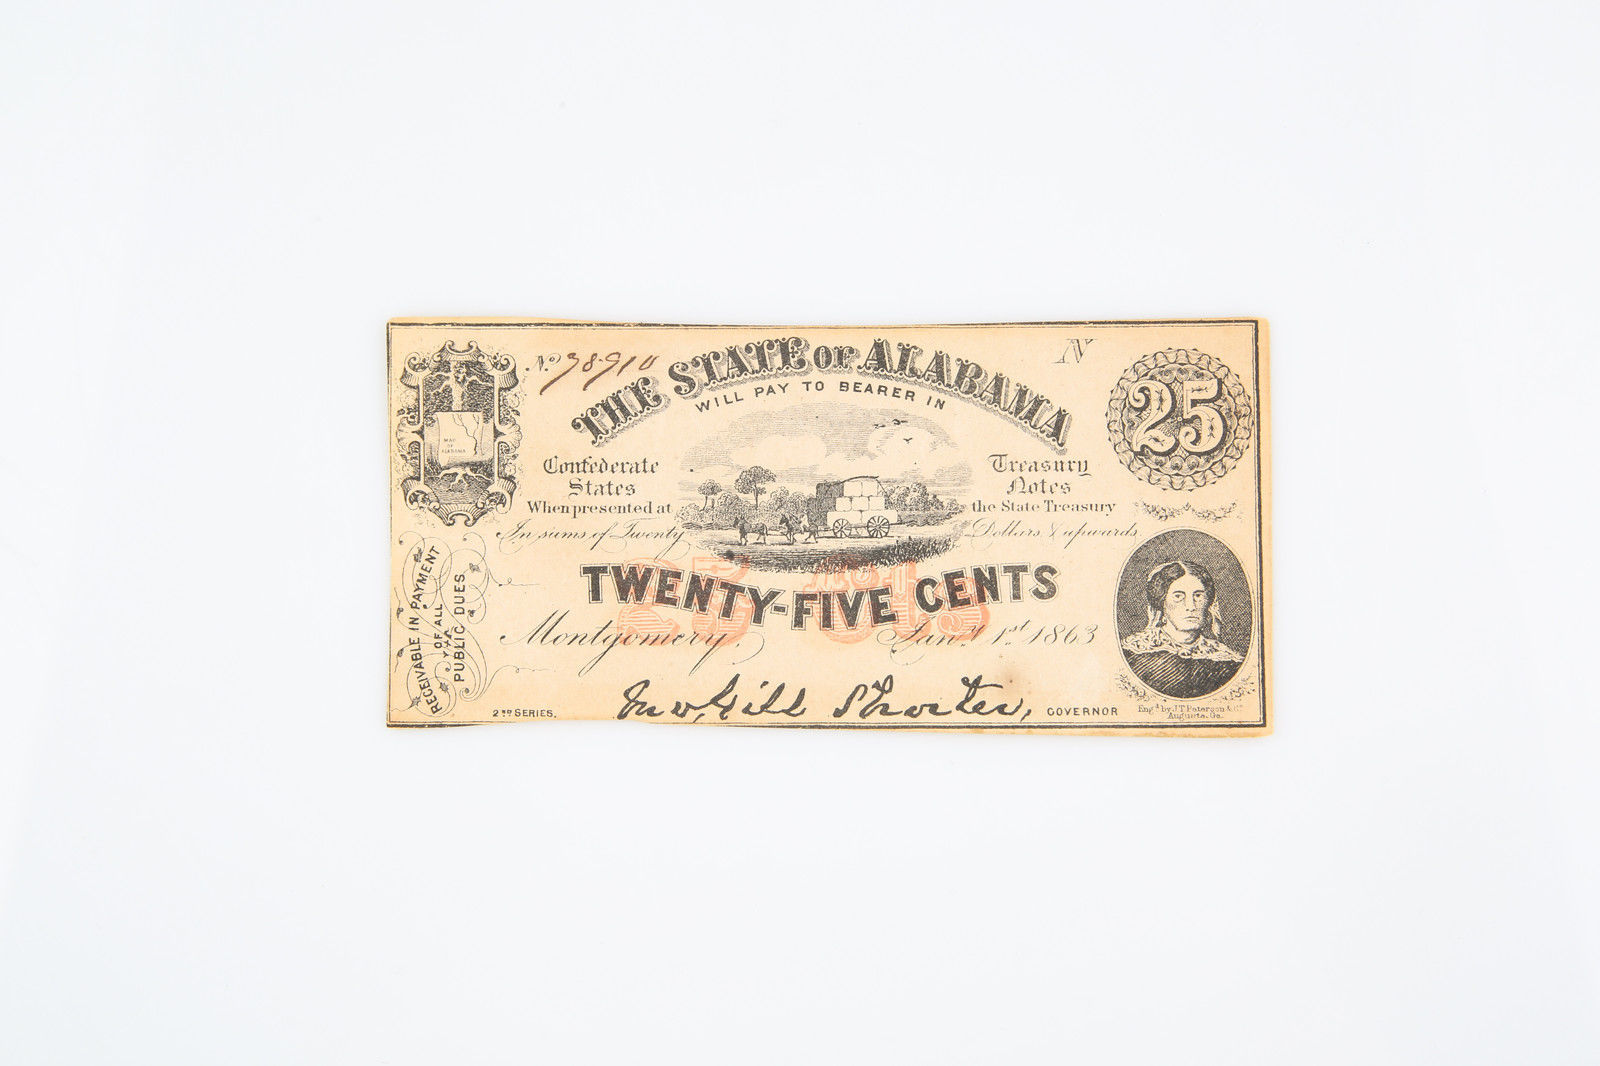 1863 State of Alabama $0.25 Twenty-Five Cents confederate Fractional Currency - $74.25